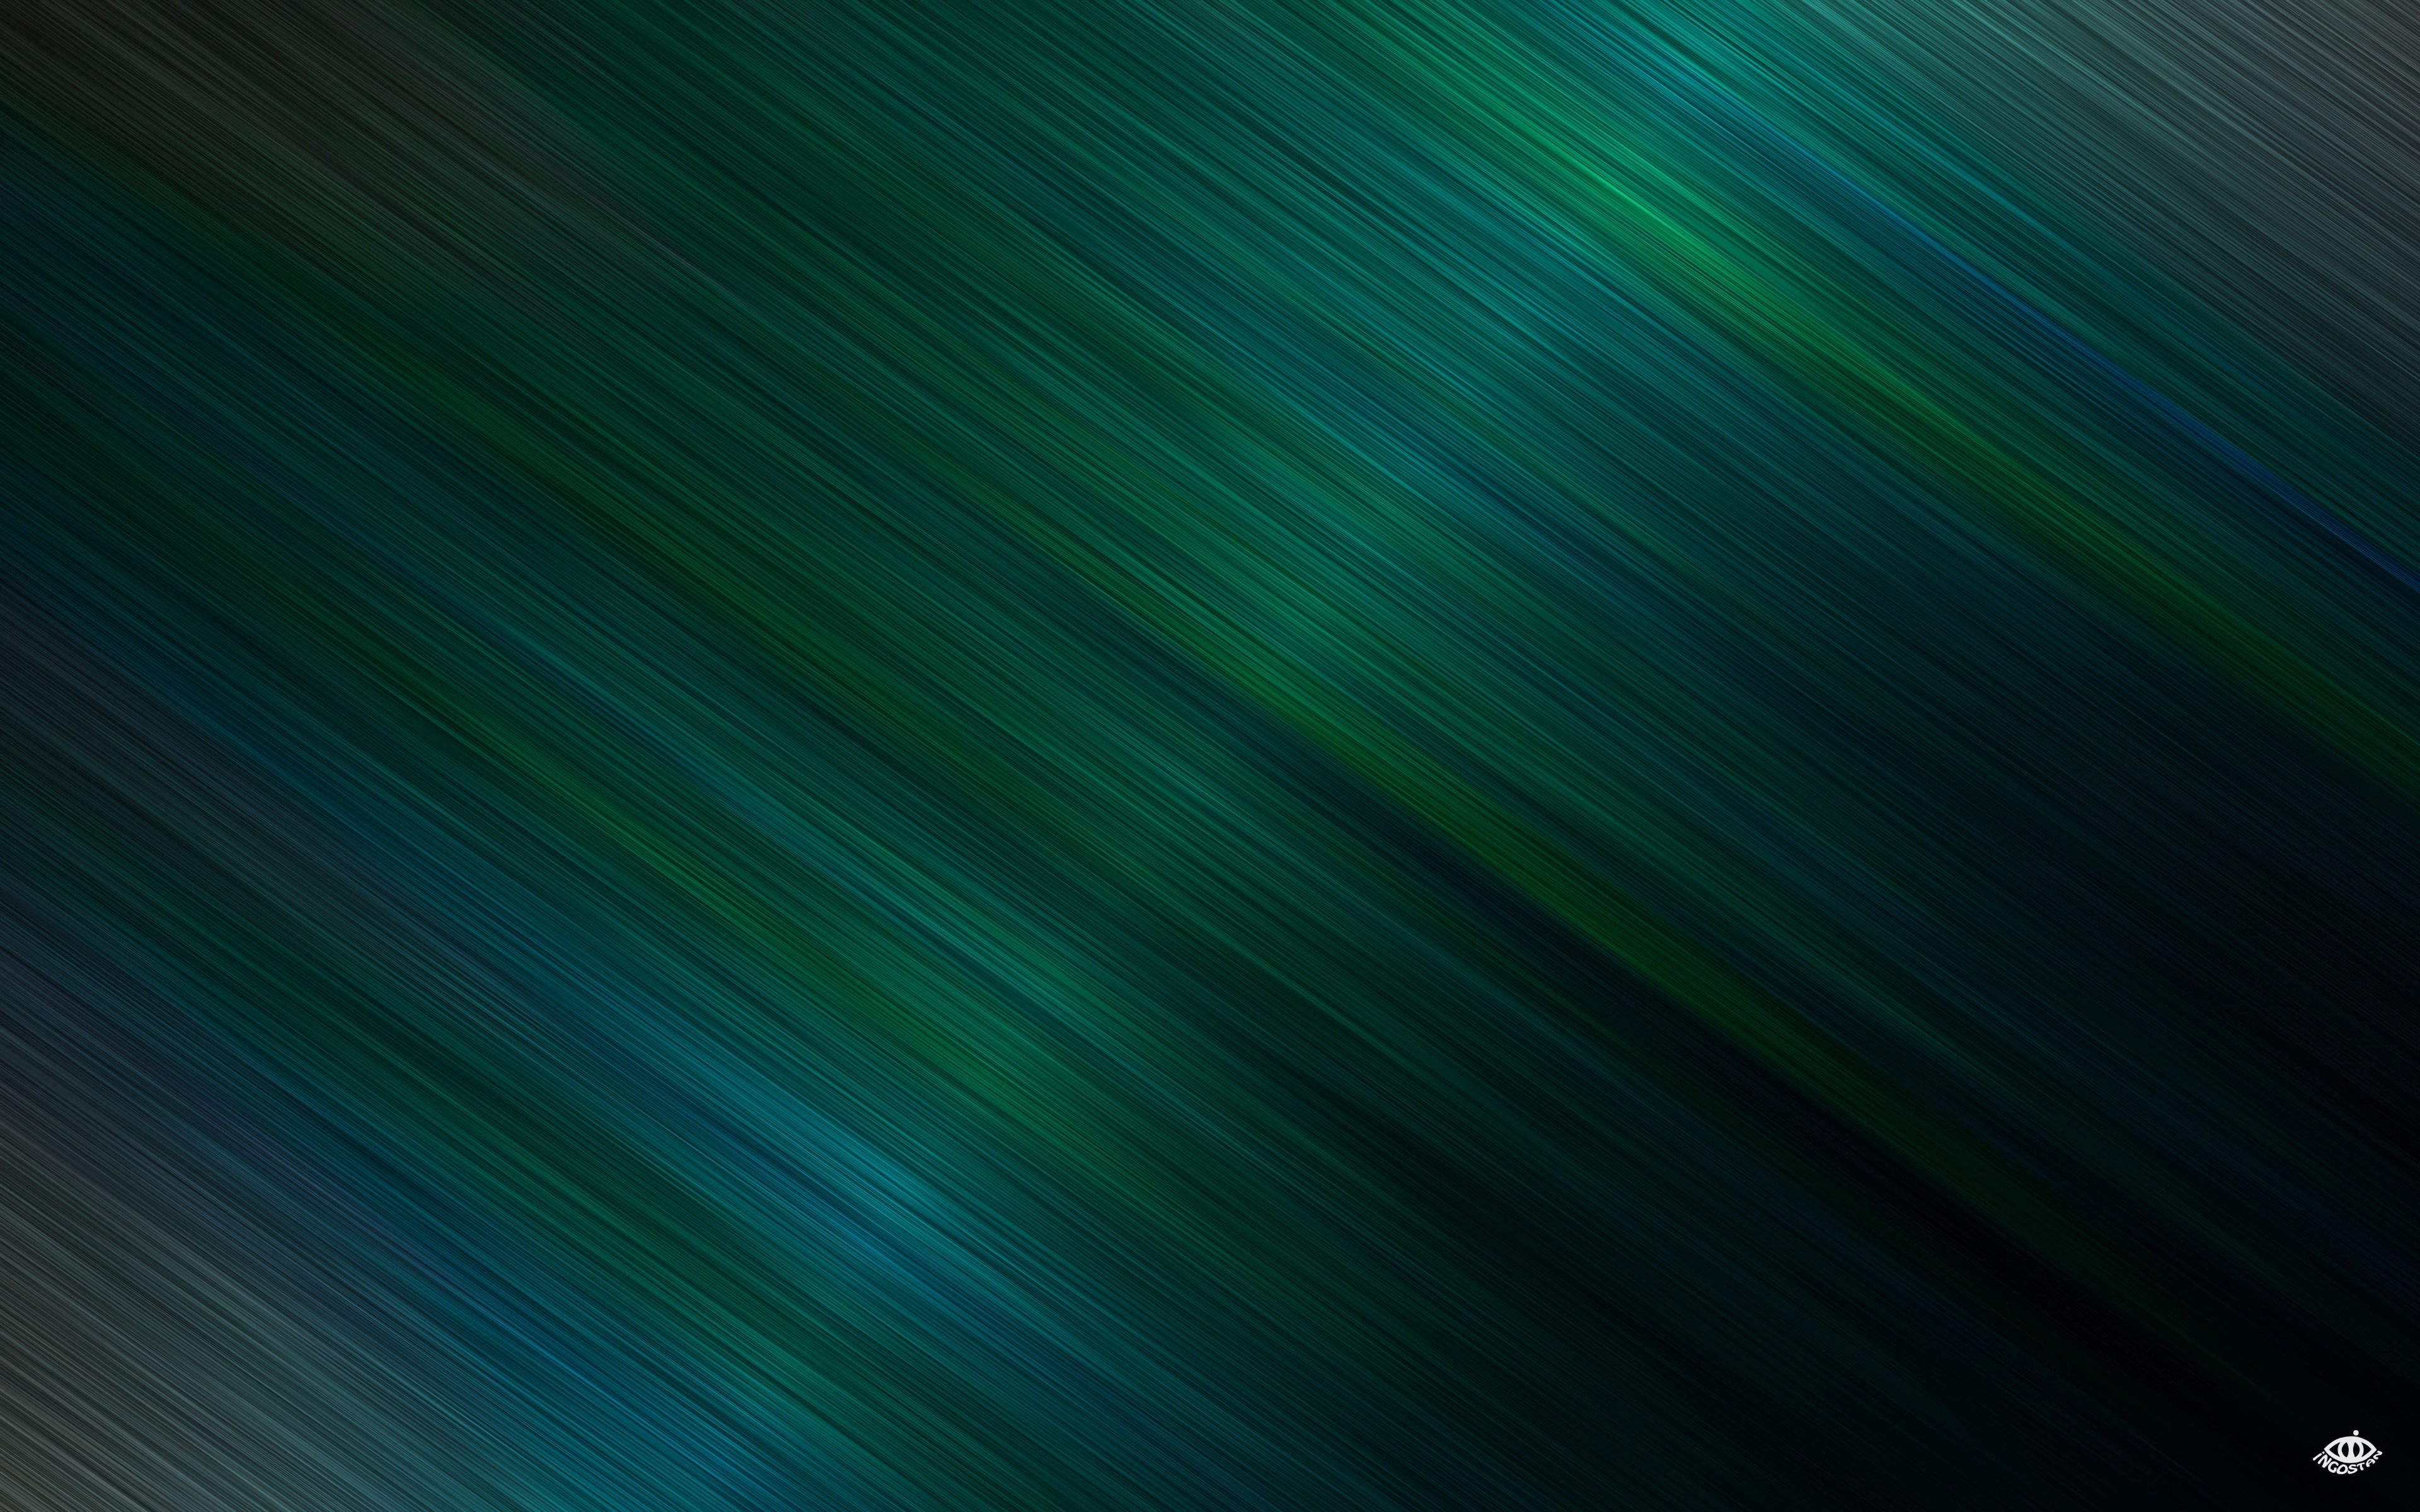 149196 download wallpaper Abstract, Texture, Stripes, Streaks, Metal, Obliquely screensavers and pictures for free